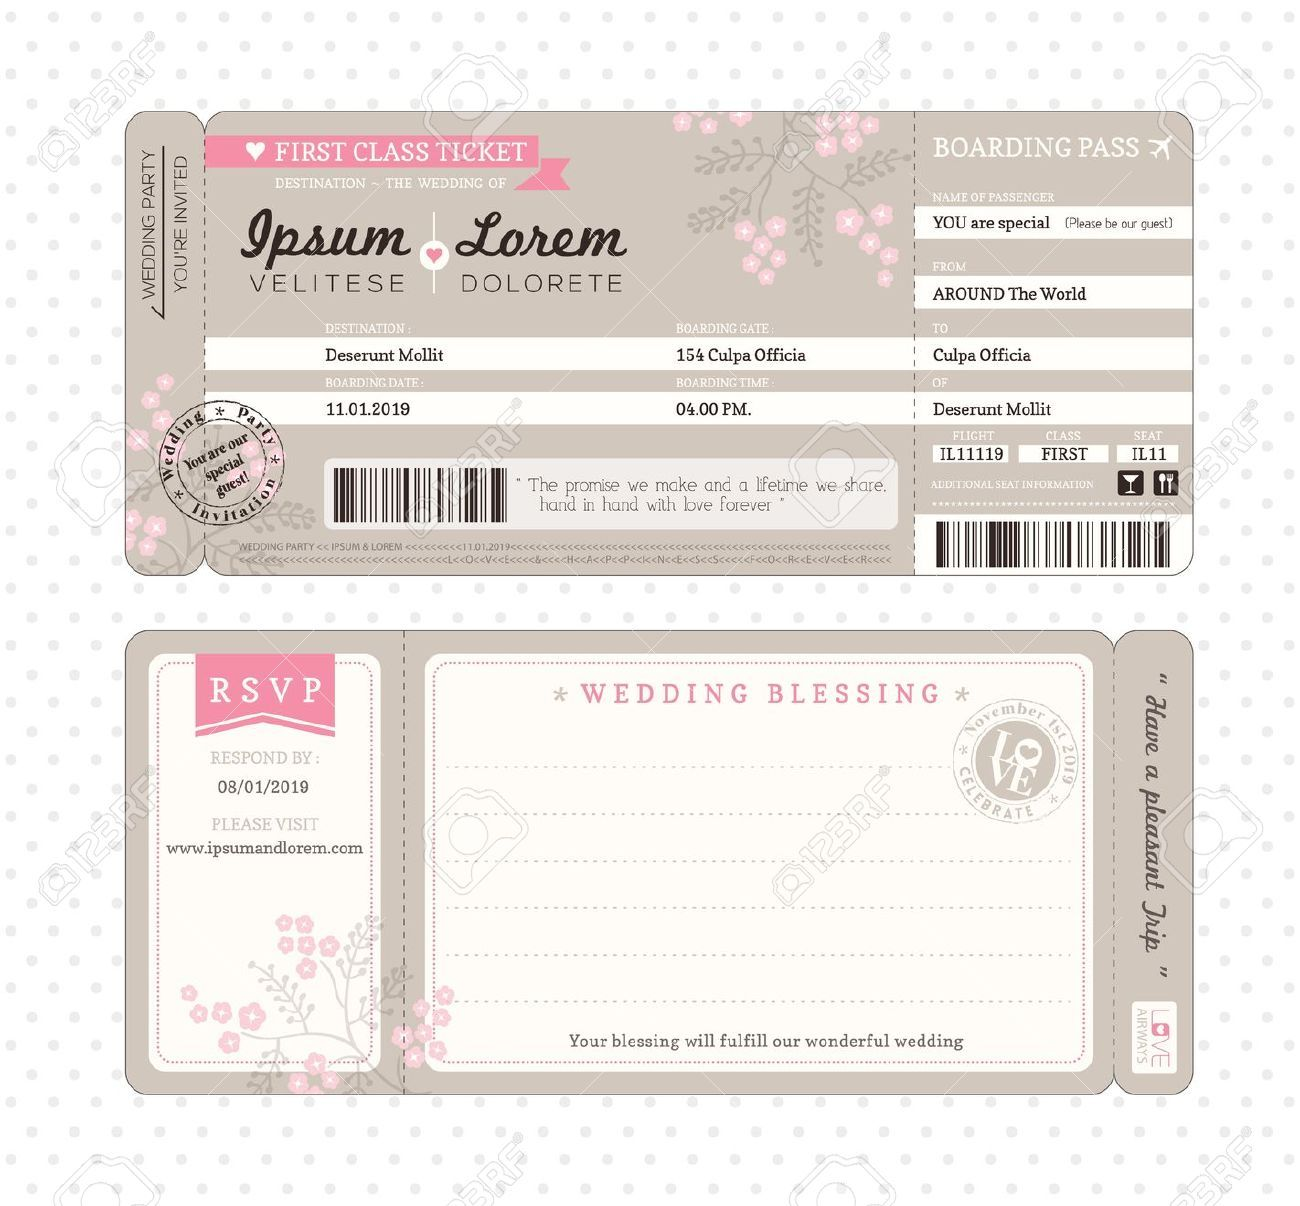 Boarding Pass Ticket Wedding Invitation Template  Boarding pass